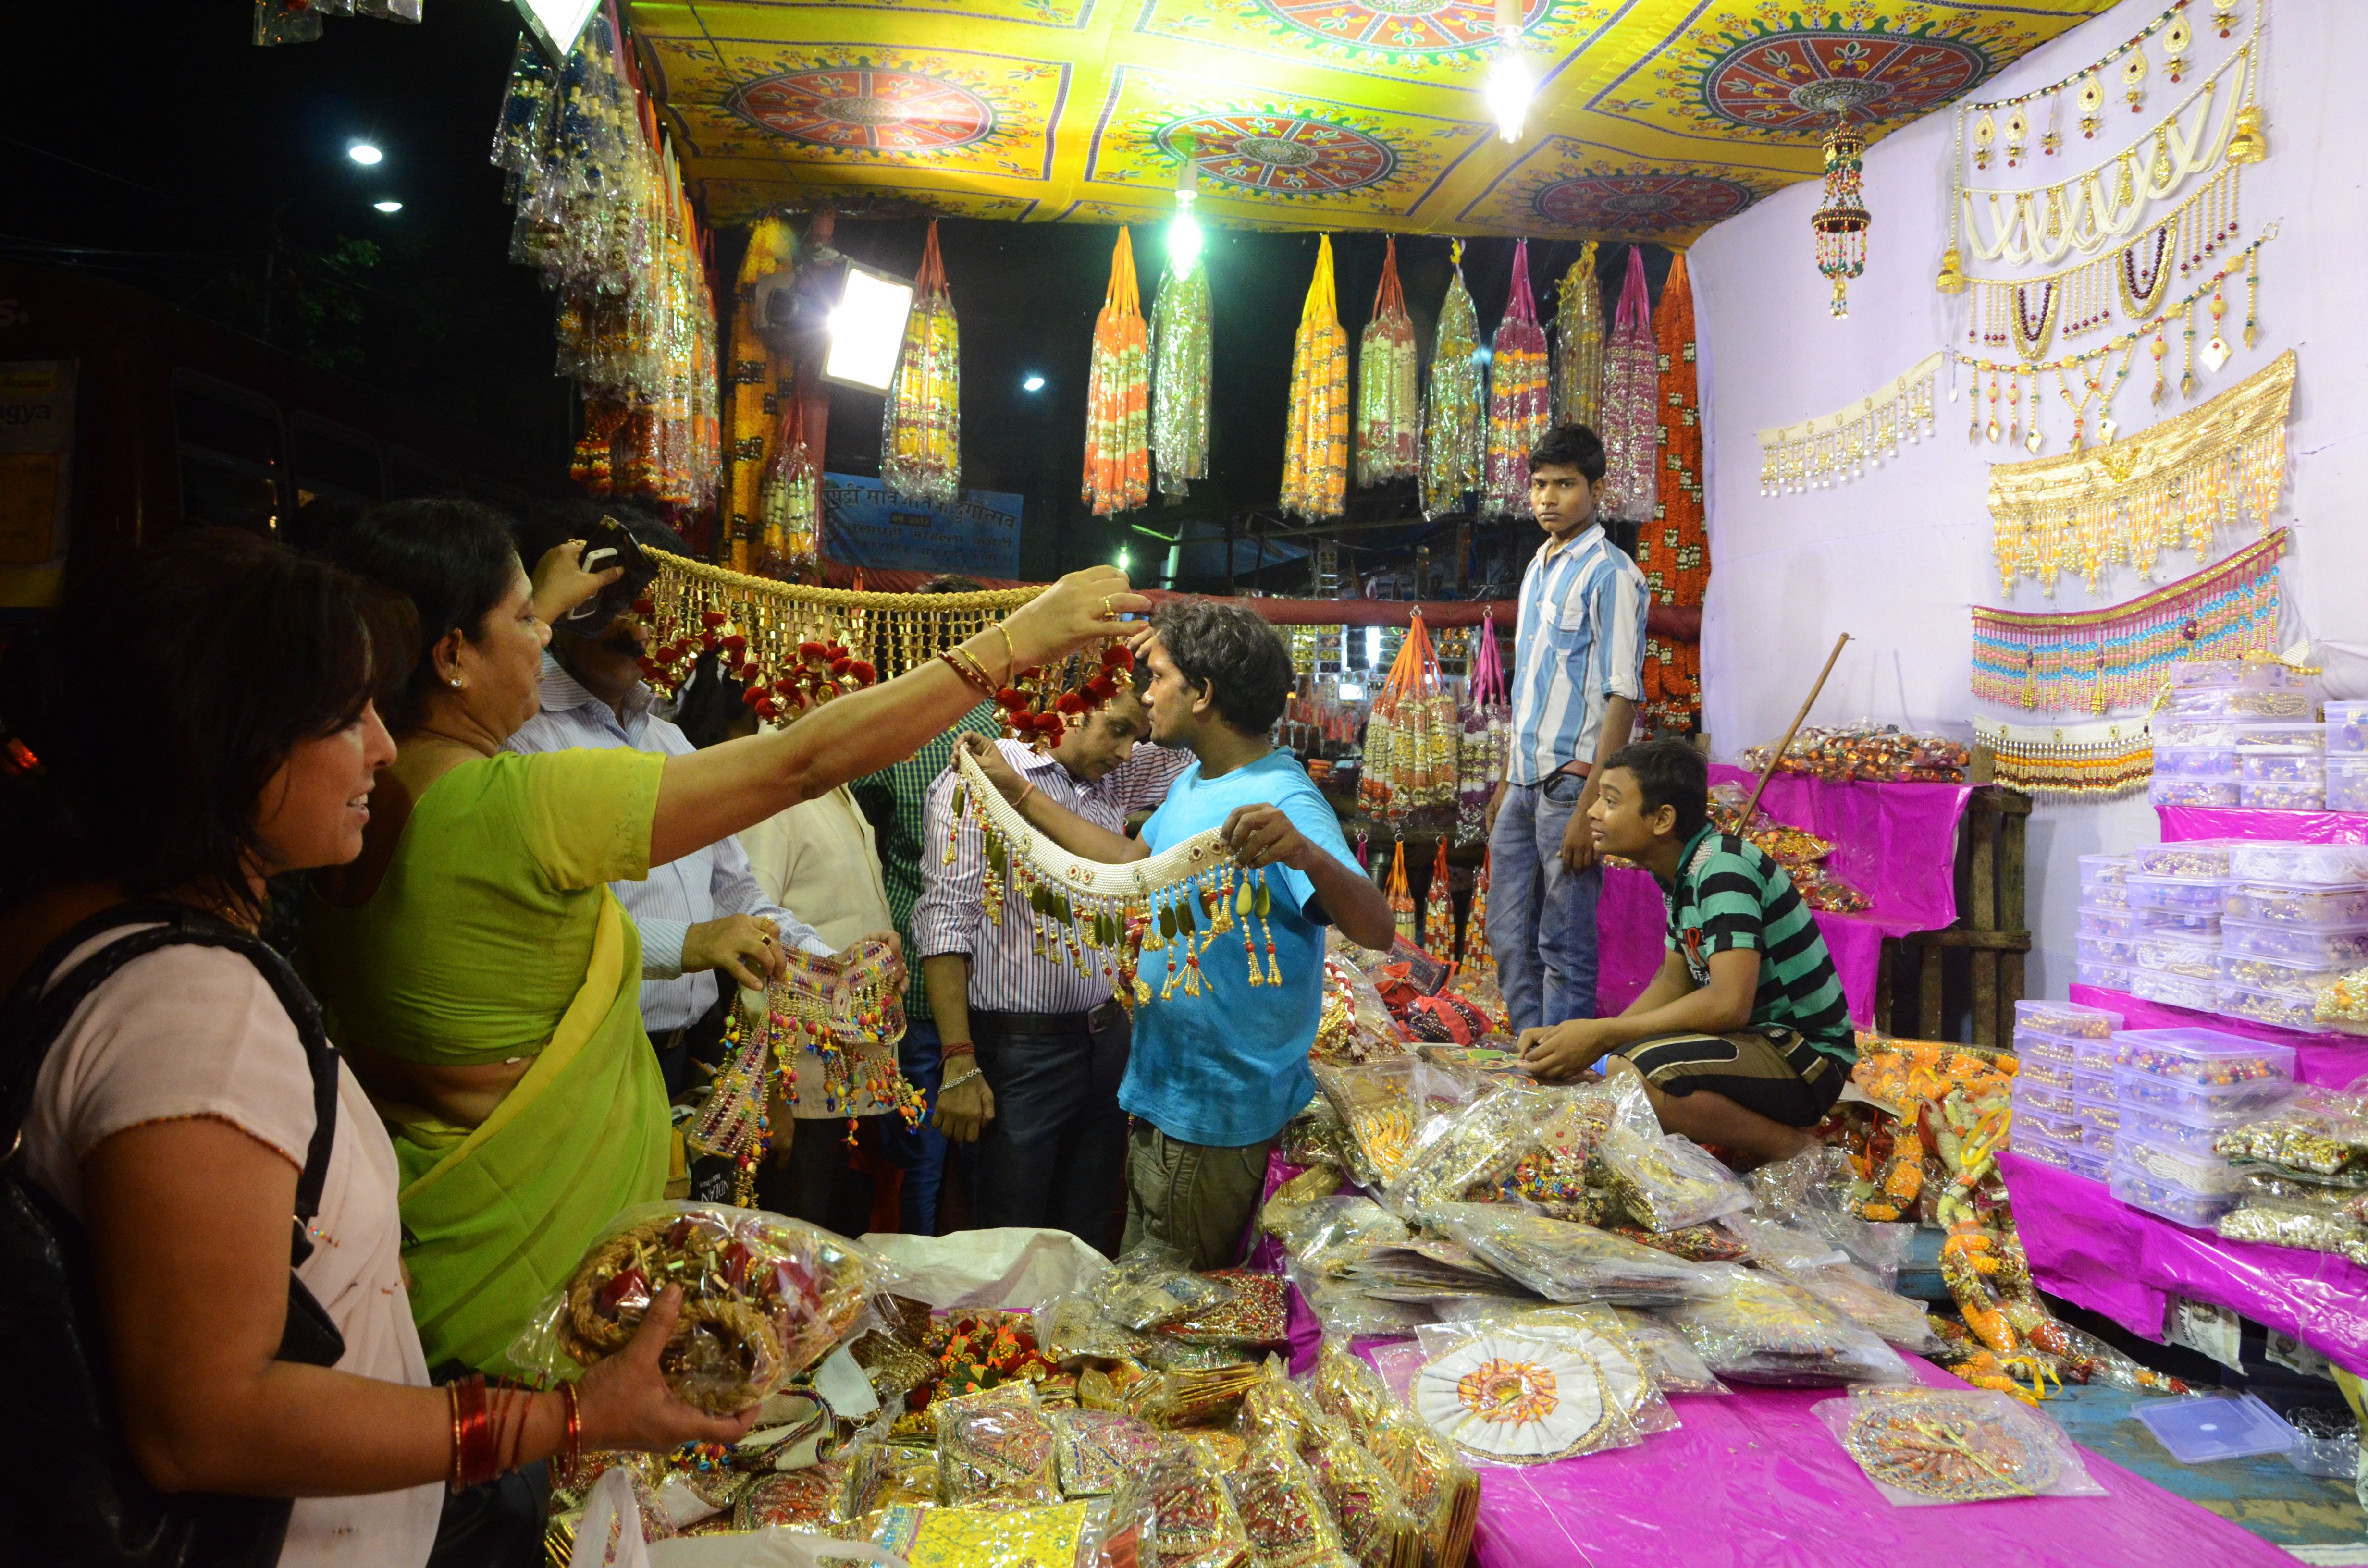 Photo Gallery: 15 Captivating Pictures of Diwali in India